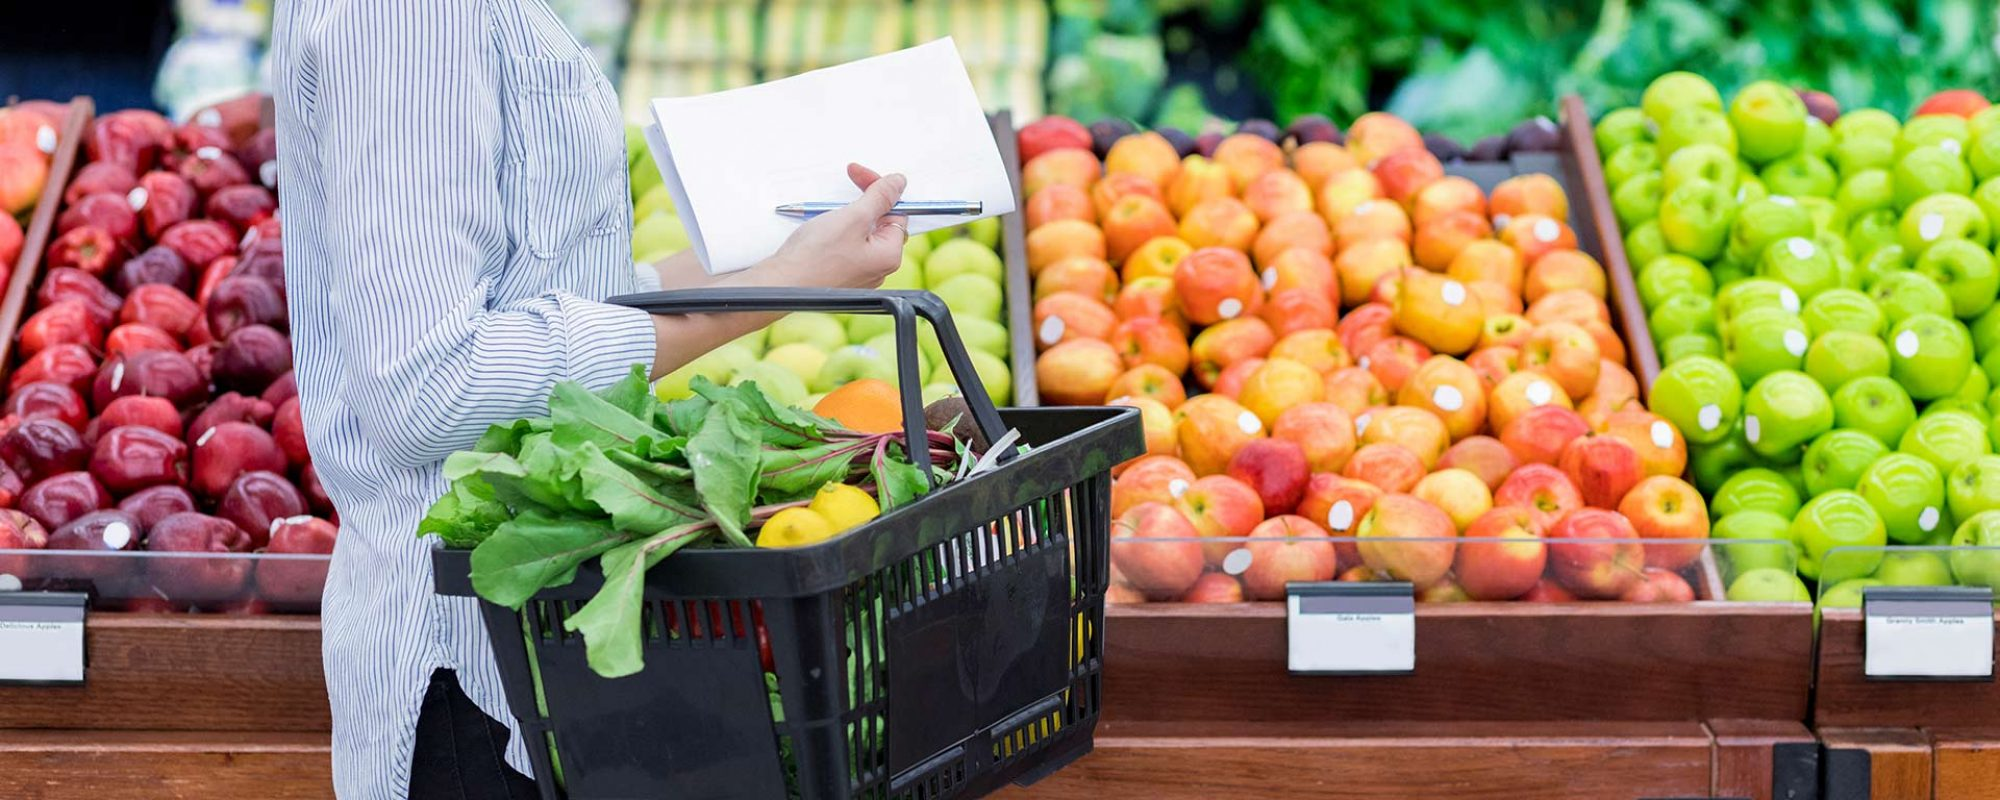 Woman with notepad picking out produce in the grocery store.